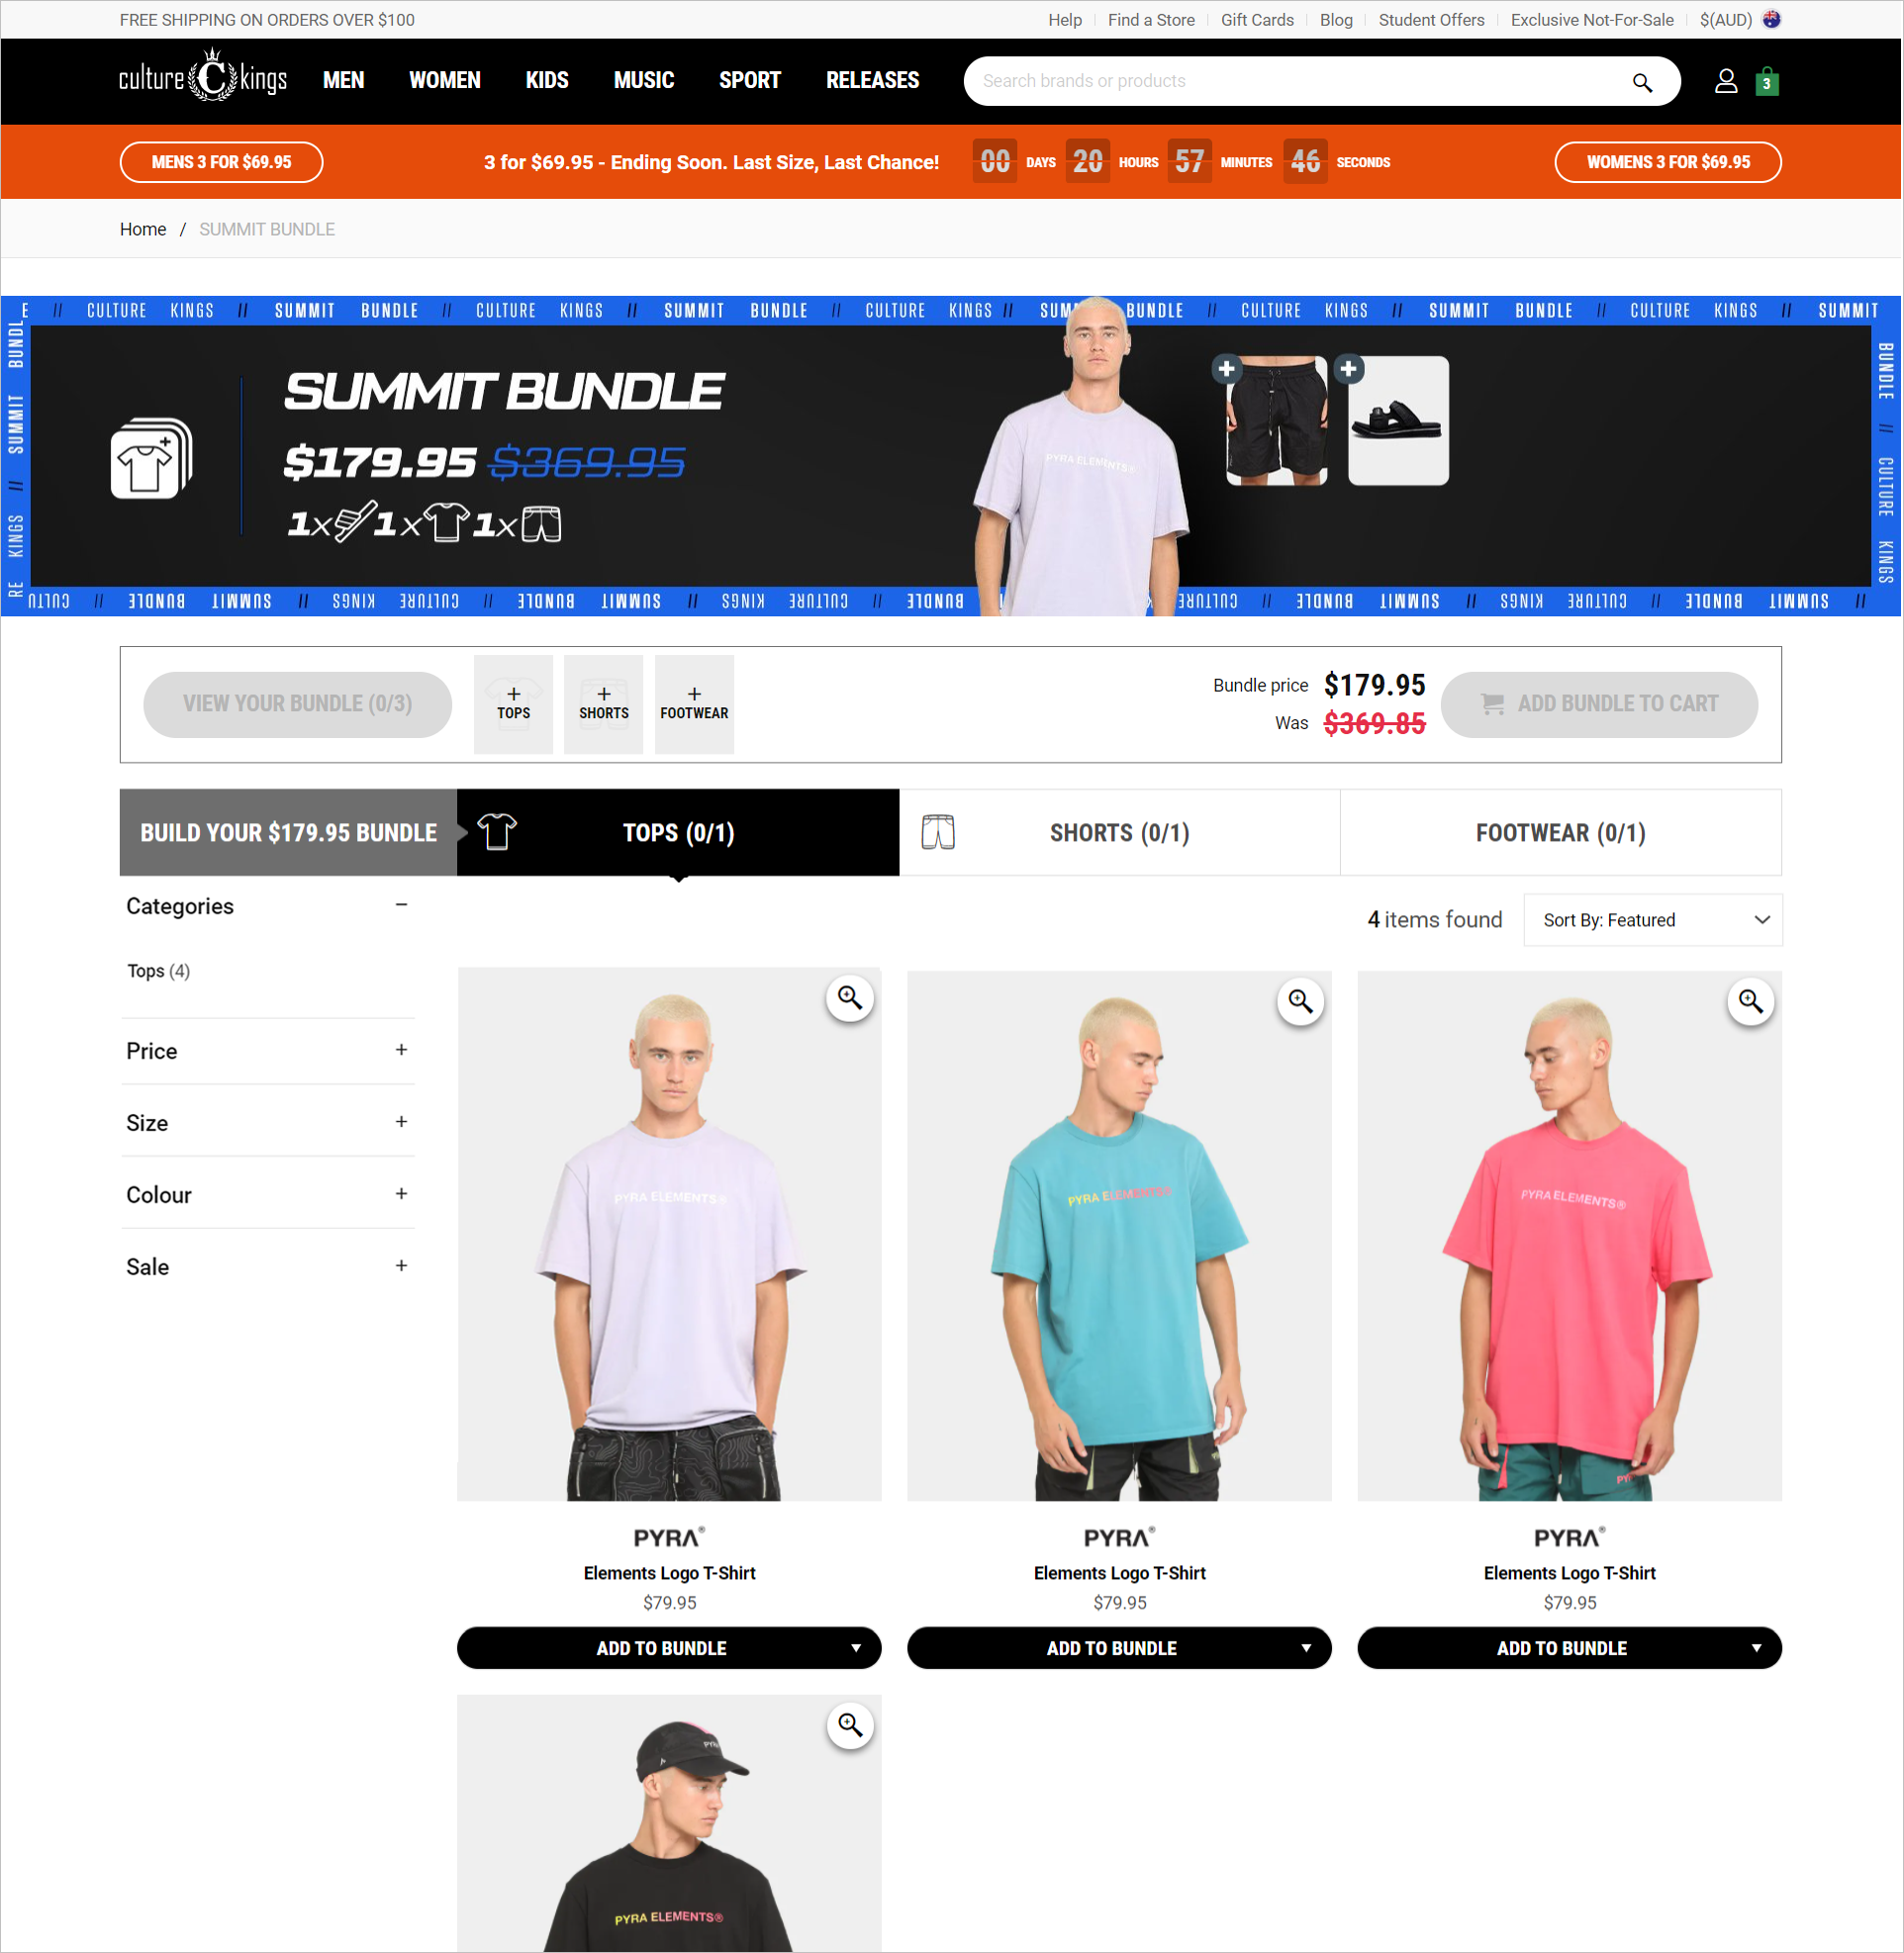 ecommerce bundled products example - culturekings.com.au's summit bundle page allows shoppers to shop an entire look by picking a pre-bundled set of products including a top, a pair of shorts, and a footwear